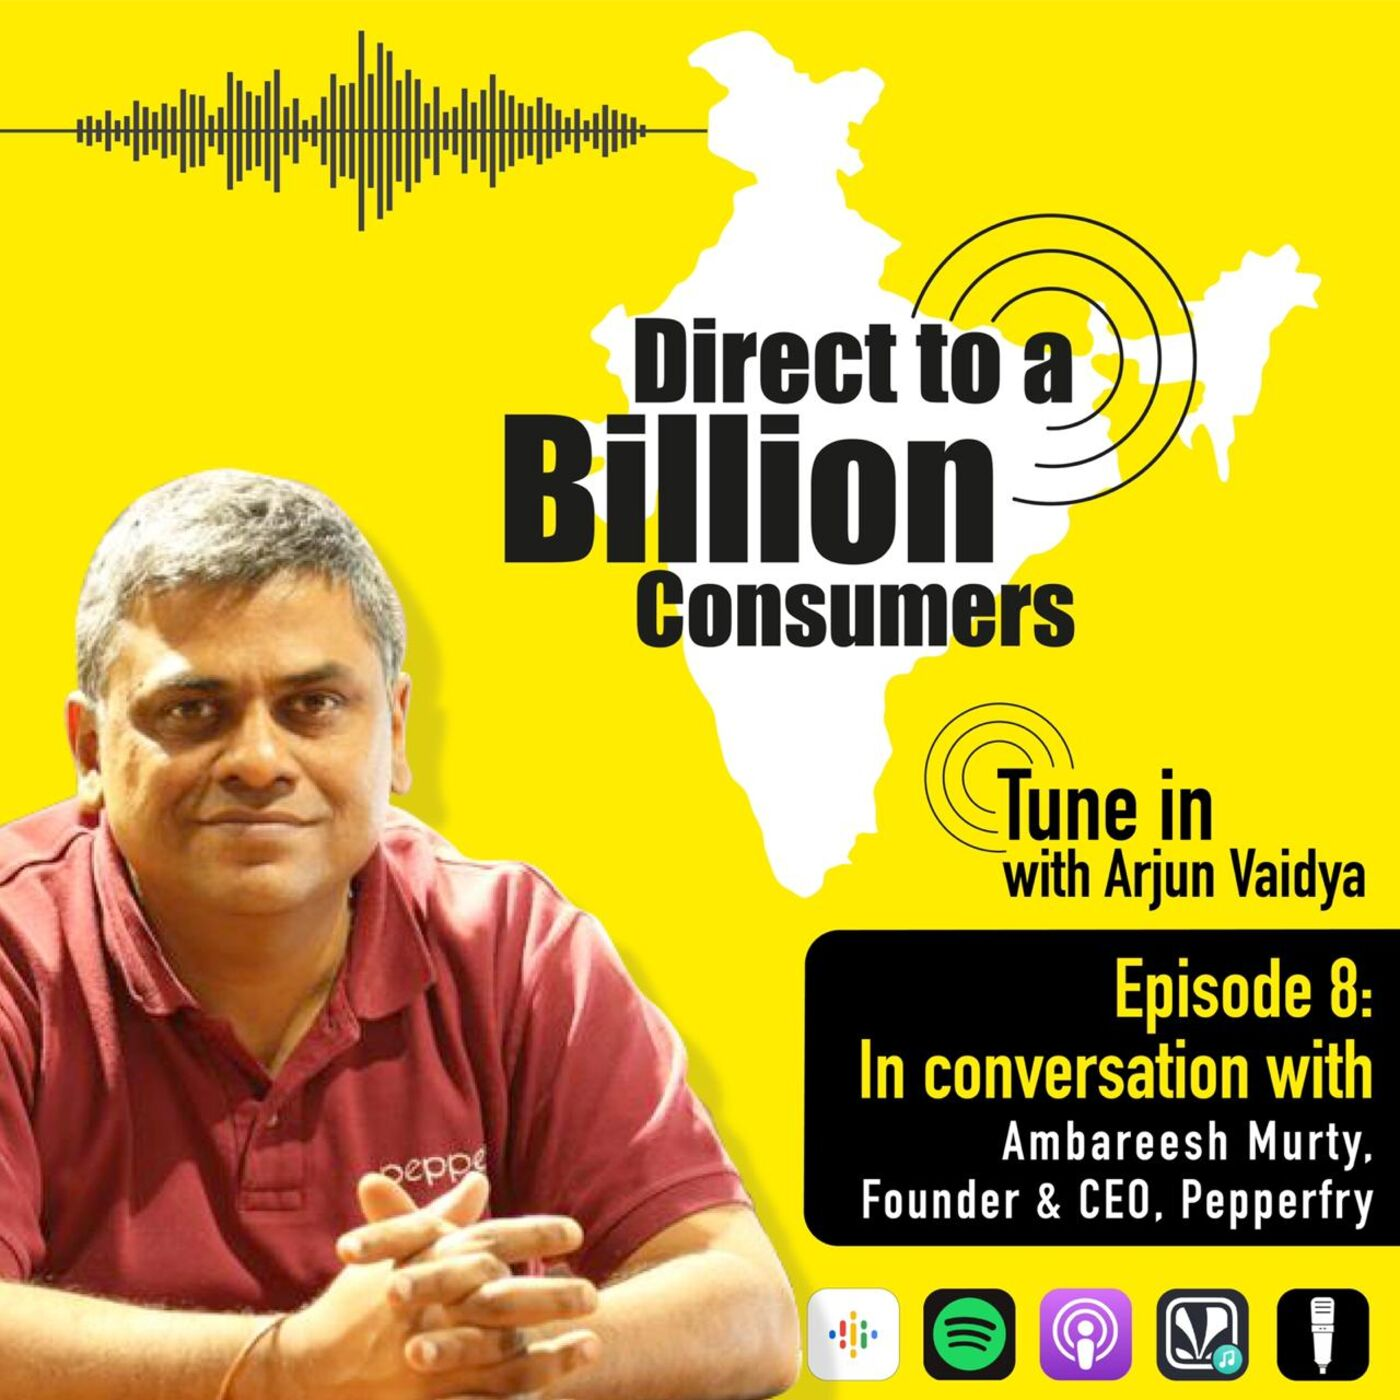 Episode 8: Ambareesh Murty, Co-Founder & CEO, Pepperfry